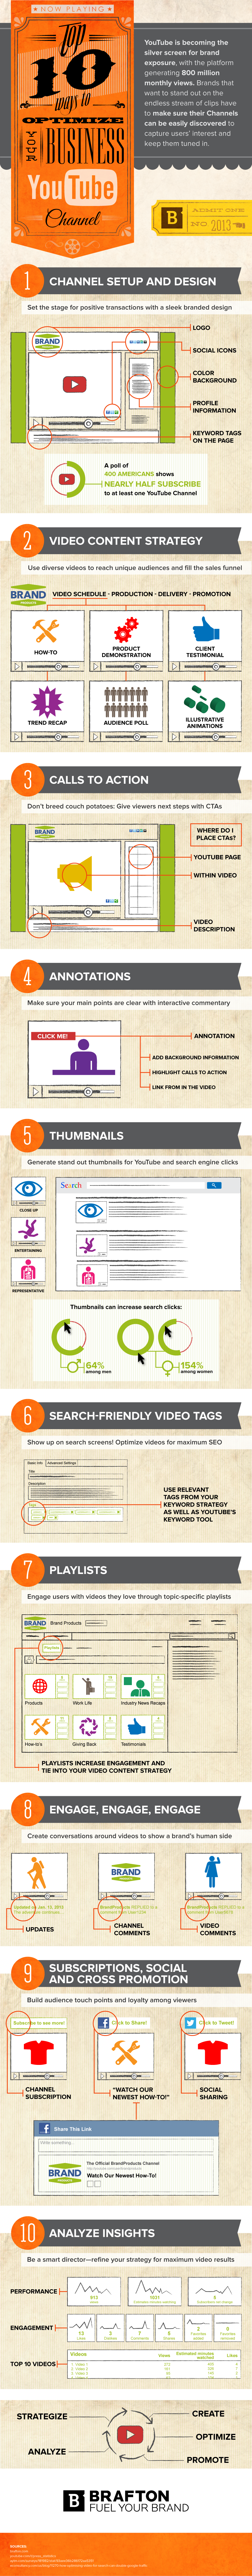 Brafton's Infographic: Top 10 Ways to Optimize Your Business YouTube Channel